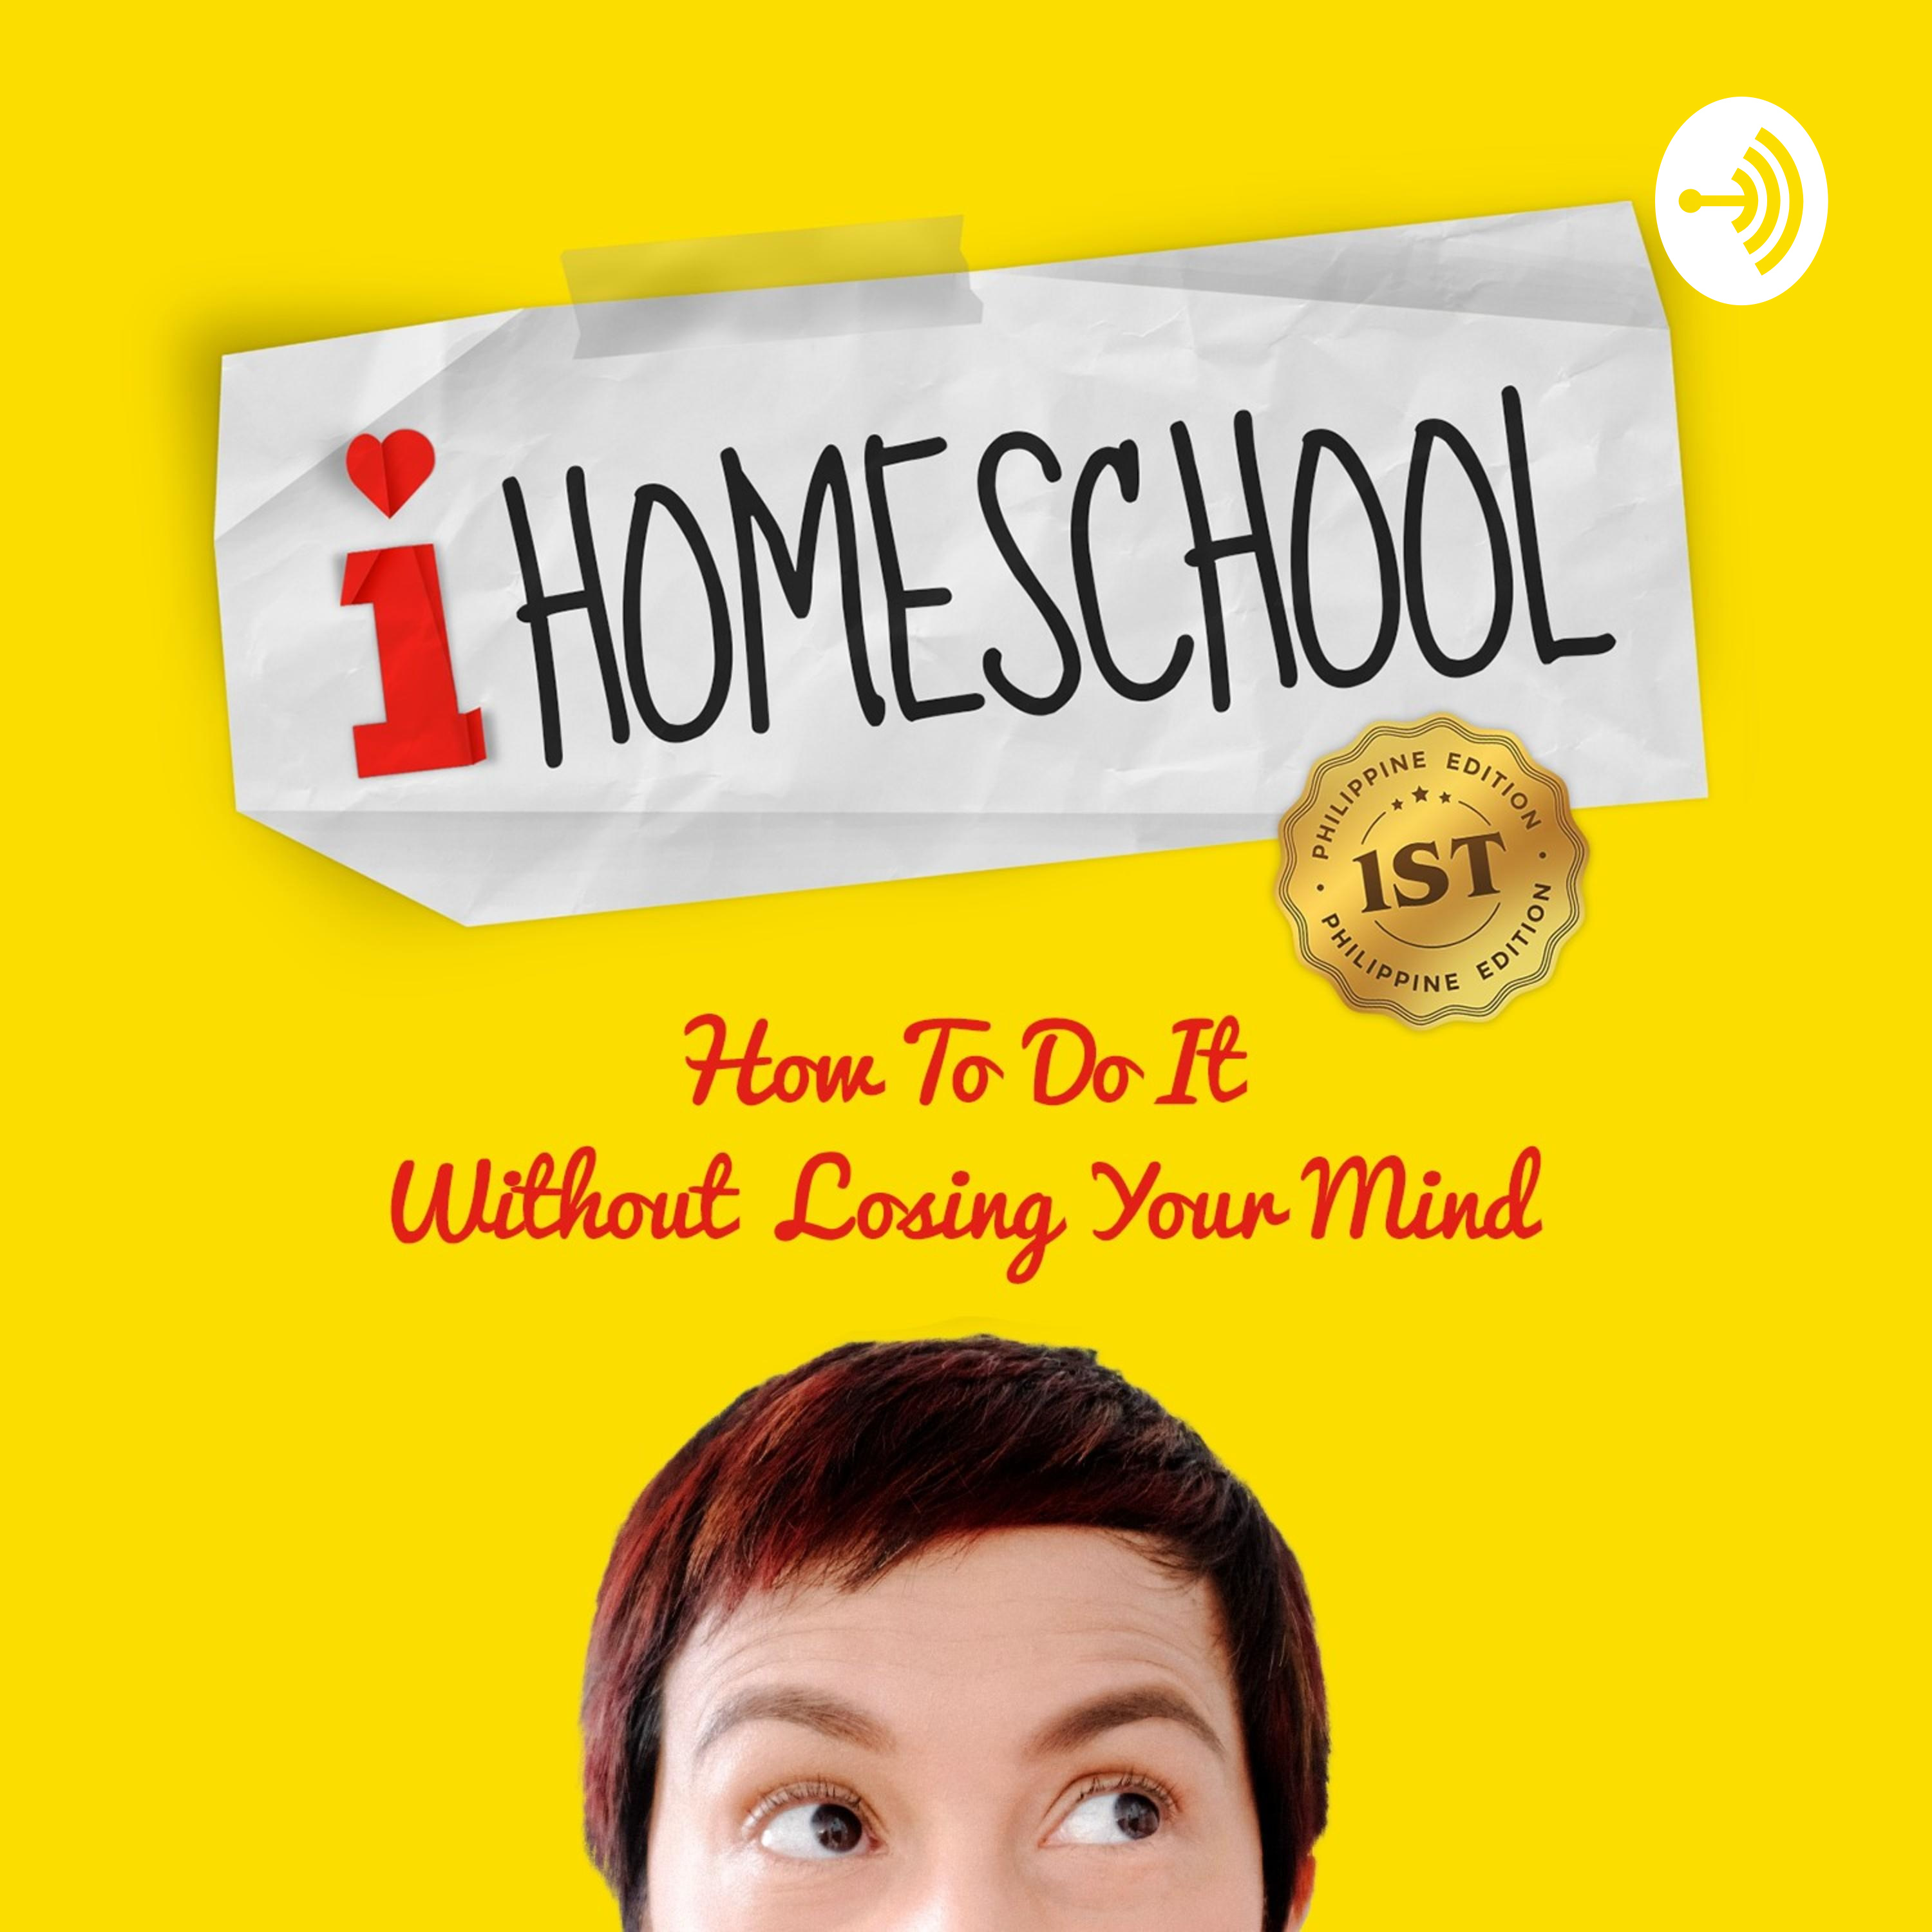 I Homeschool (How to do it without losing your mind)